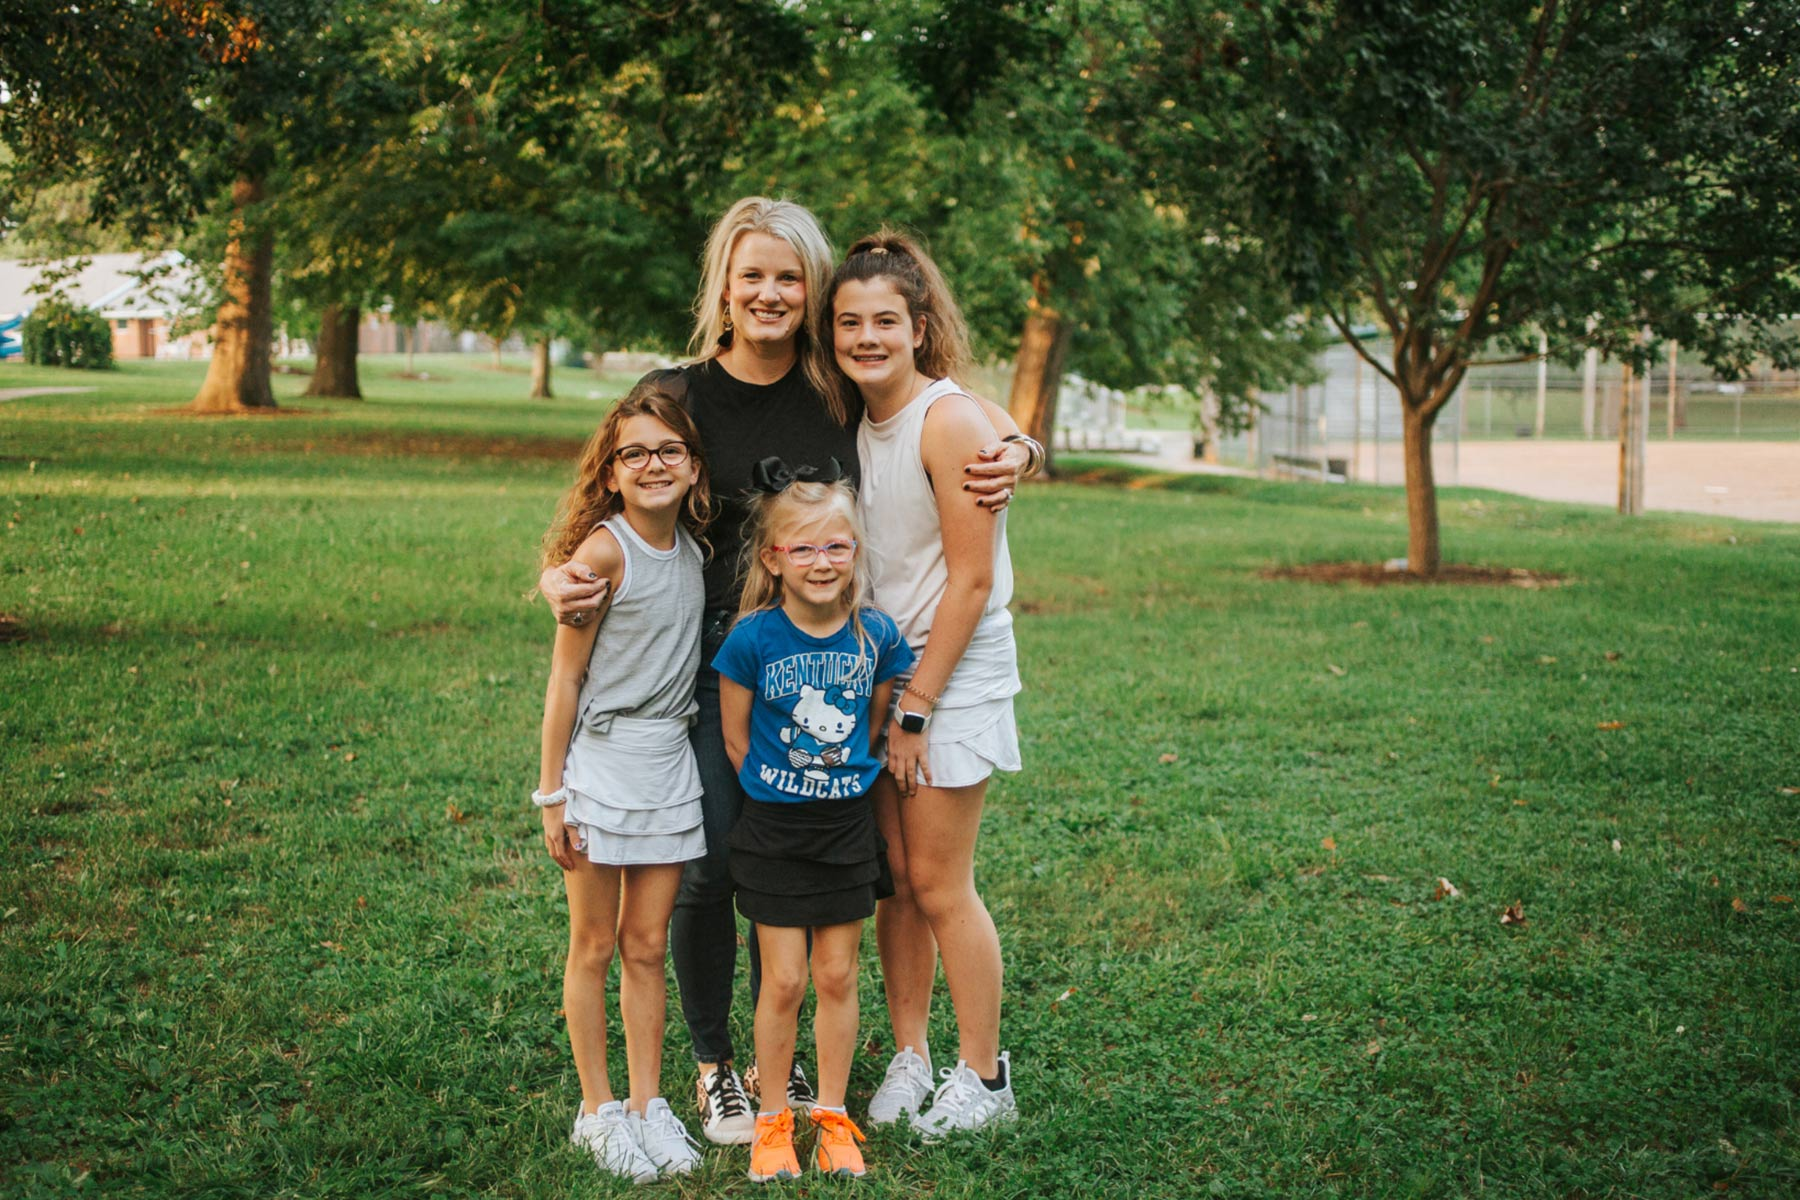 Kelley Buffano, a middle-aged white woman with blonde hair, stands in a park hugging her three daughters: Gabriellla, Olivia, and Isabella.